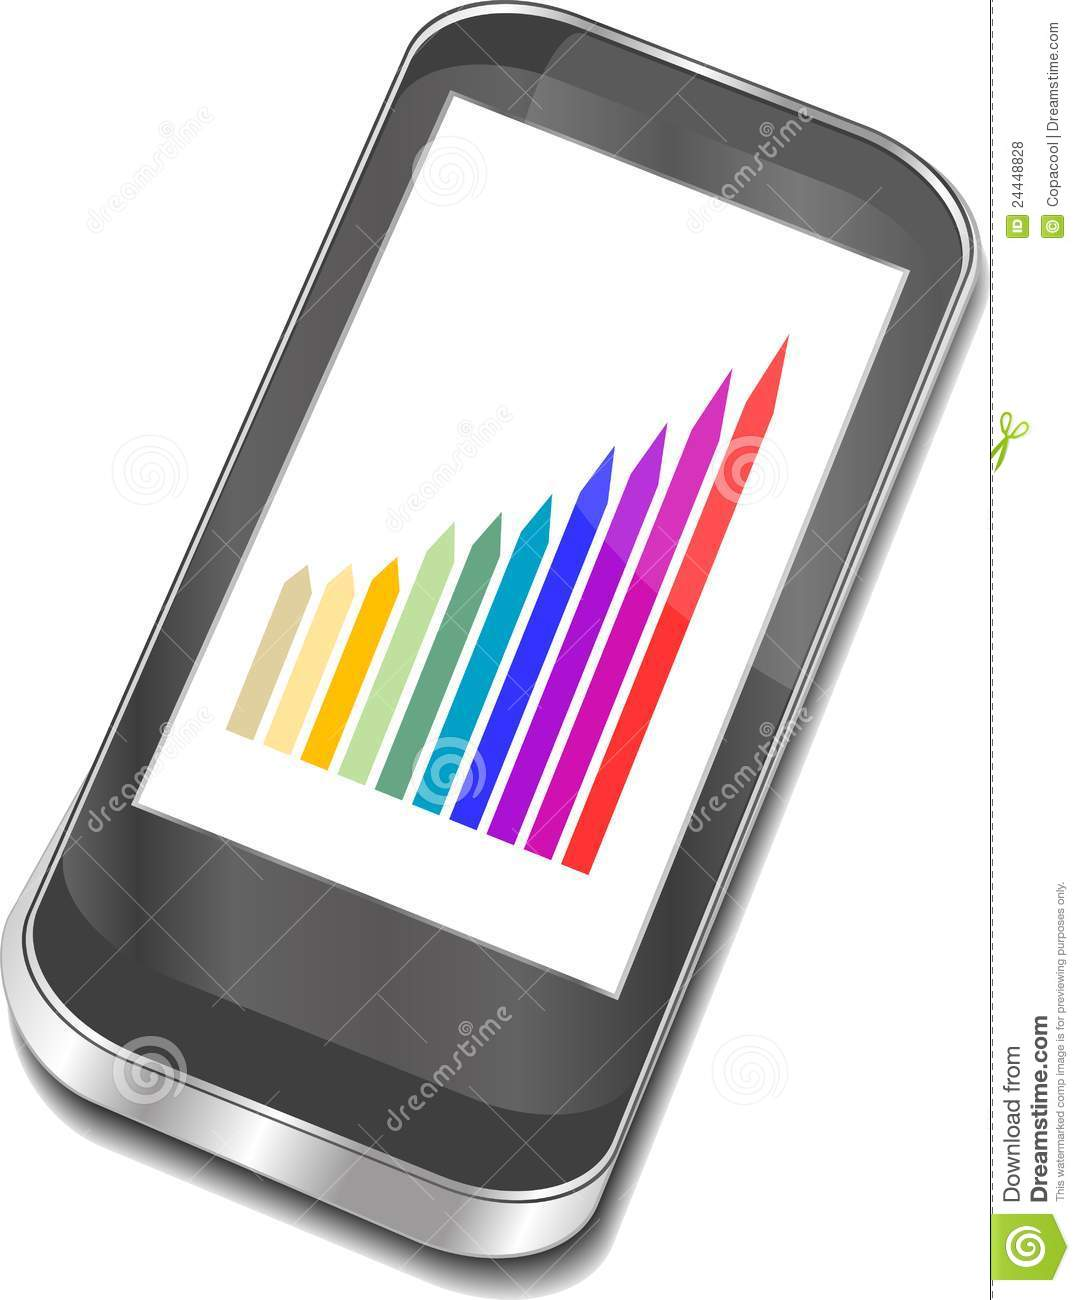 Smart Phone With Graphic Picture Royalty Free Stock Photos ...